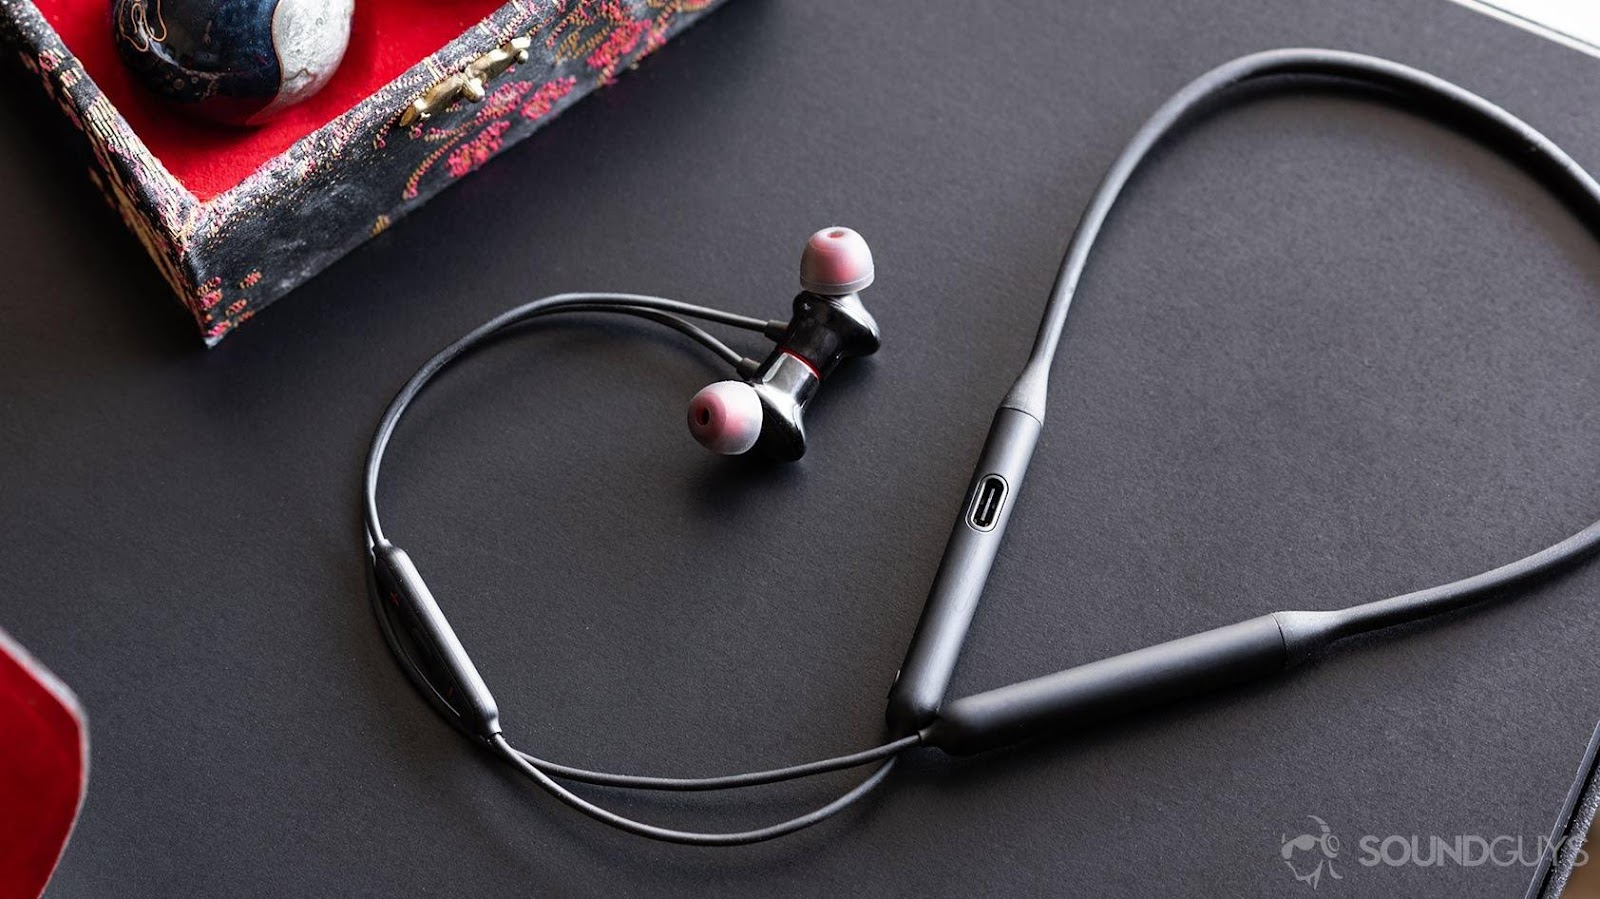 OnePlus Bullets Wireless 2 review: A sequel done right - Android Authority